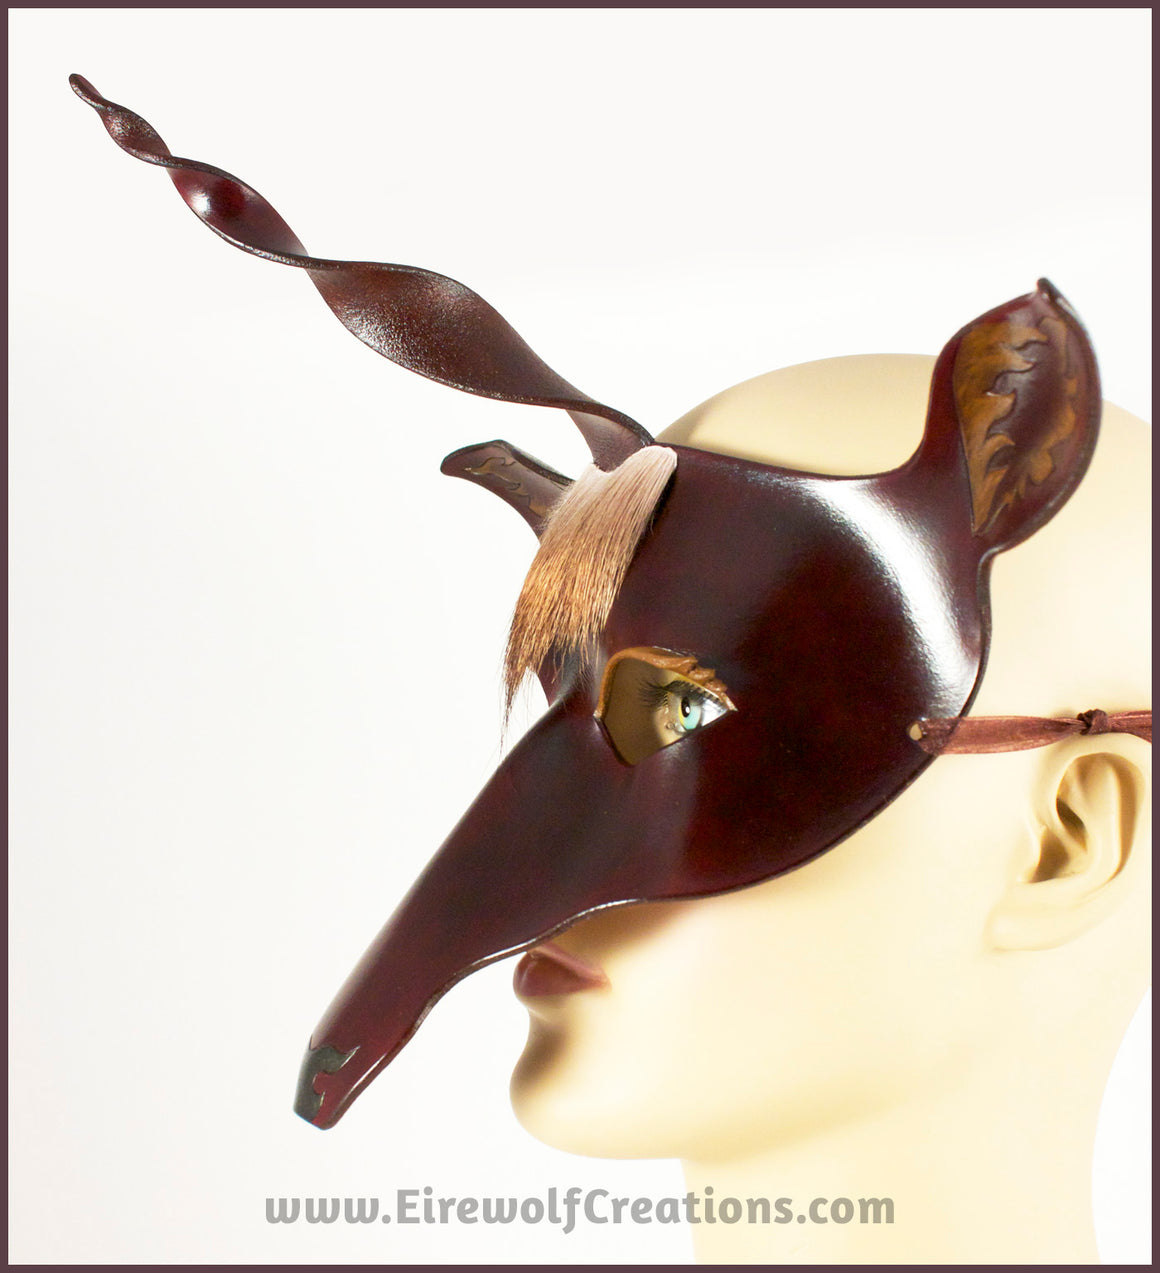 The Dark Forest Unicorn is a dark brown handmade leather masquerade mask of a deerlike unicorn with real deer hair as a forelock. By Erin Metcalf of Eirewolf Creations.